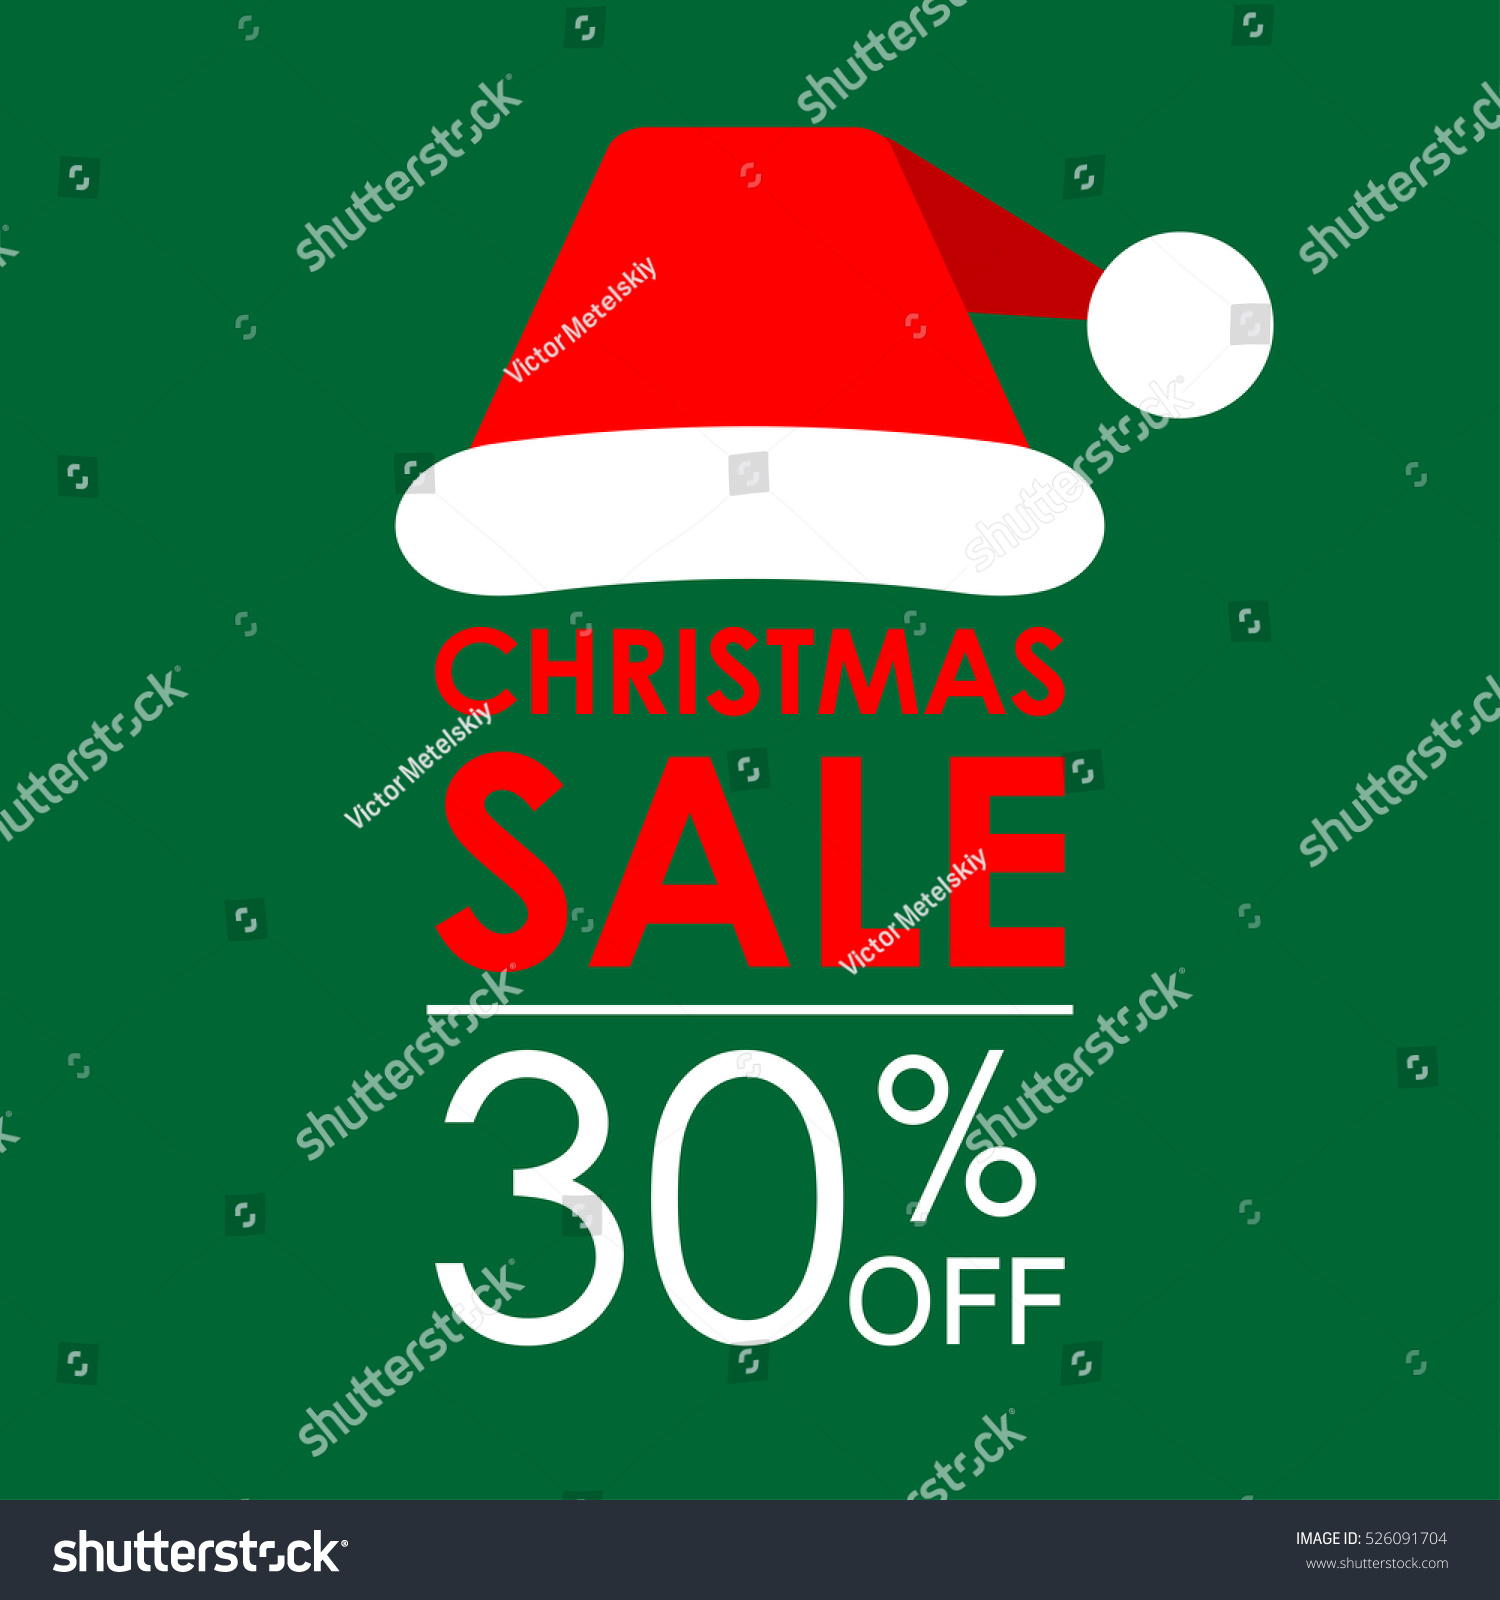 30 Off Sale Christmas Sale Banner Stock Vector (Royalty Free ...